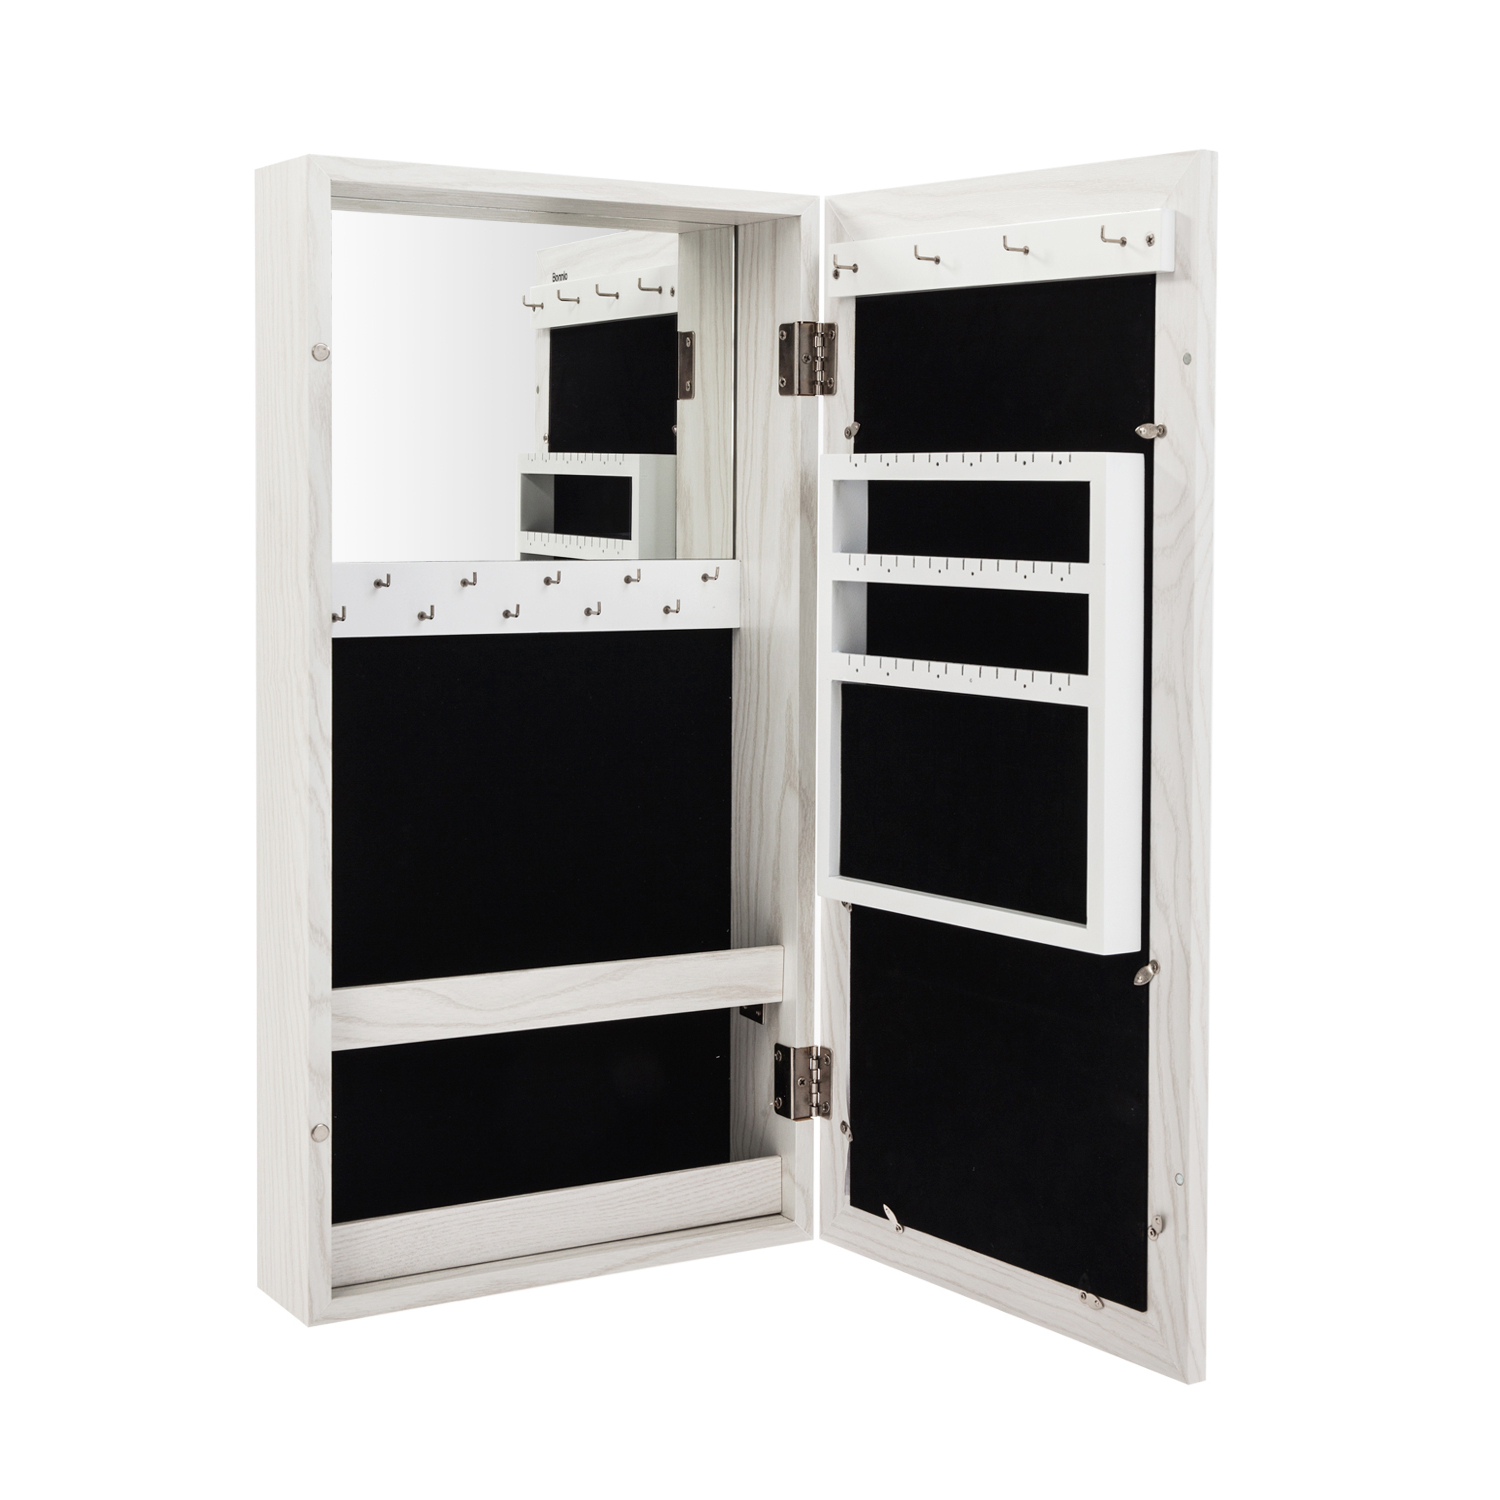 Jewelry Box Wall Mirrors Regarding Fashionable 62Cm Wall/door Mounted Makeup Jewelry Box Mirror Cabinet (View 7 of 20)